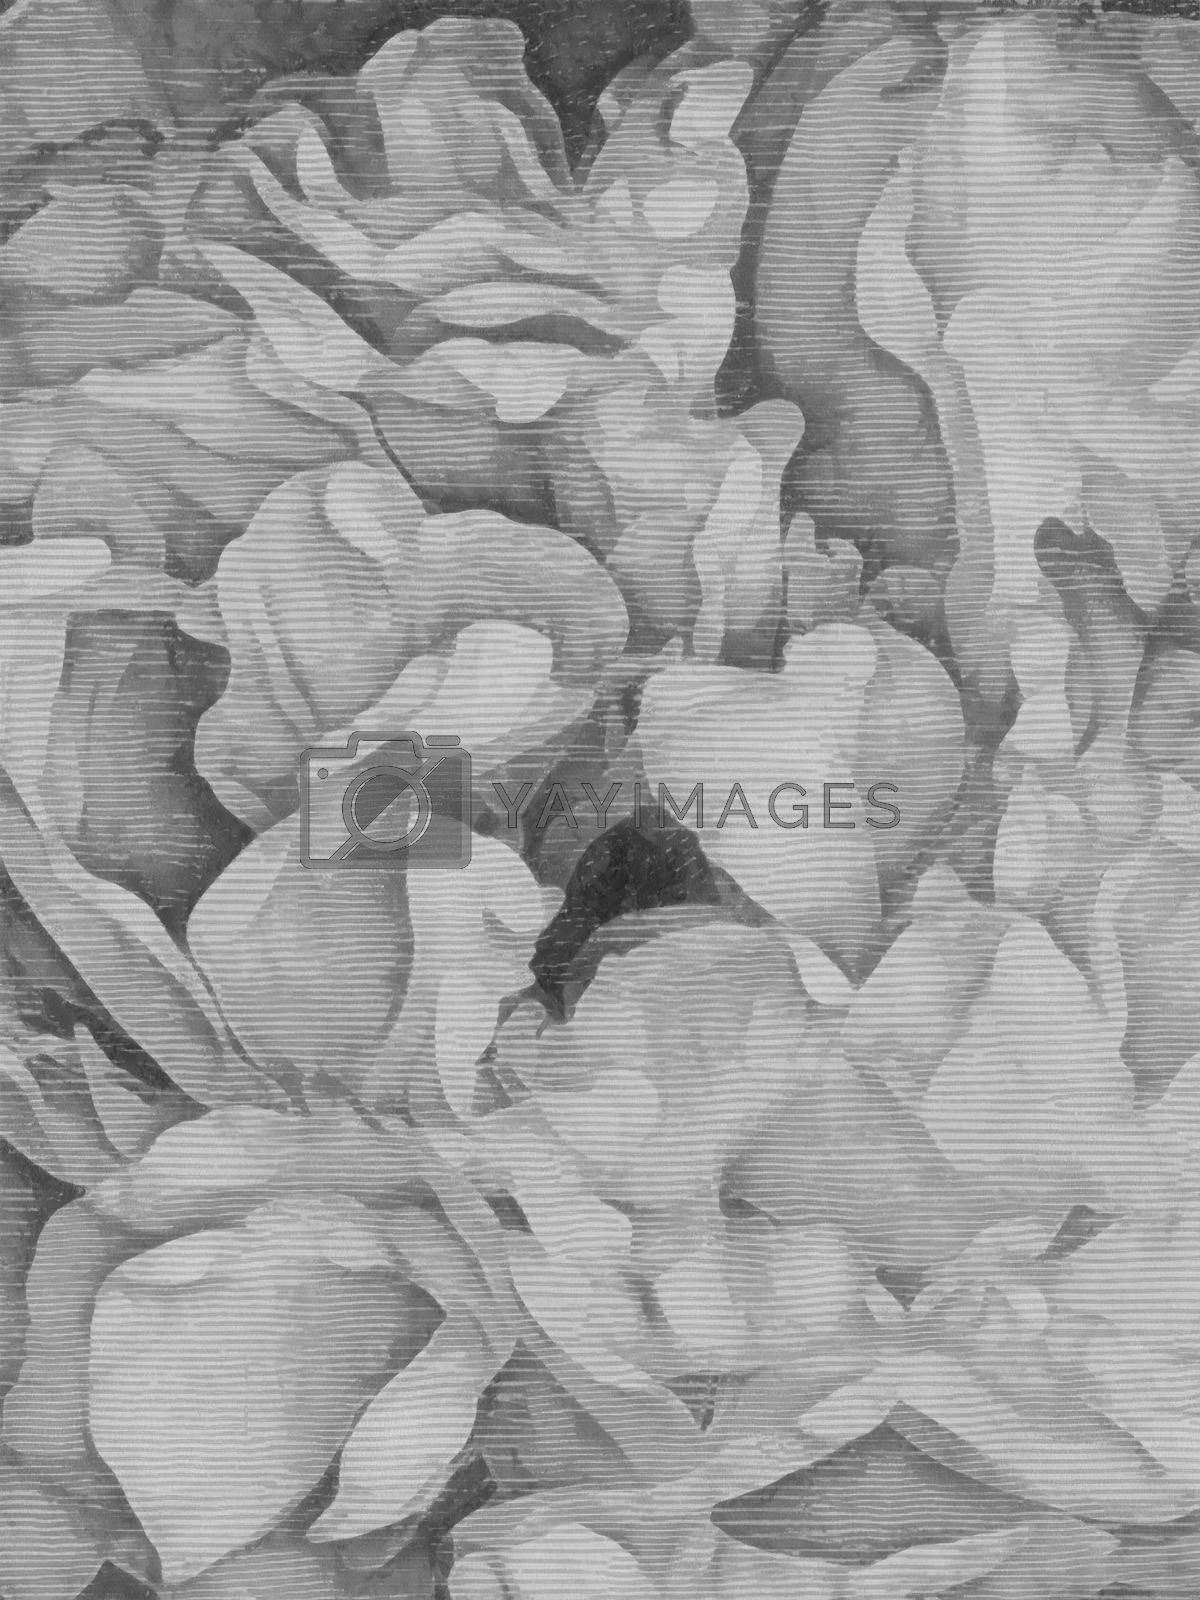 Flowers petals abstract by applesstock